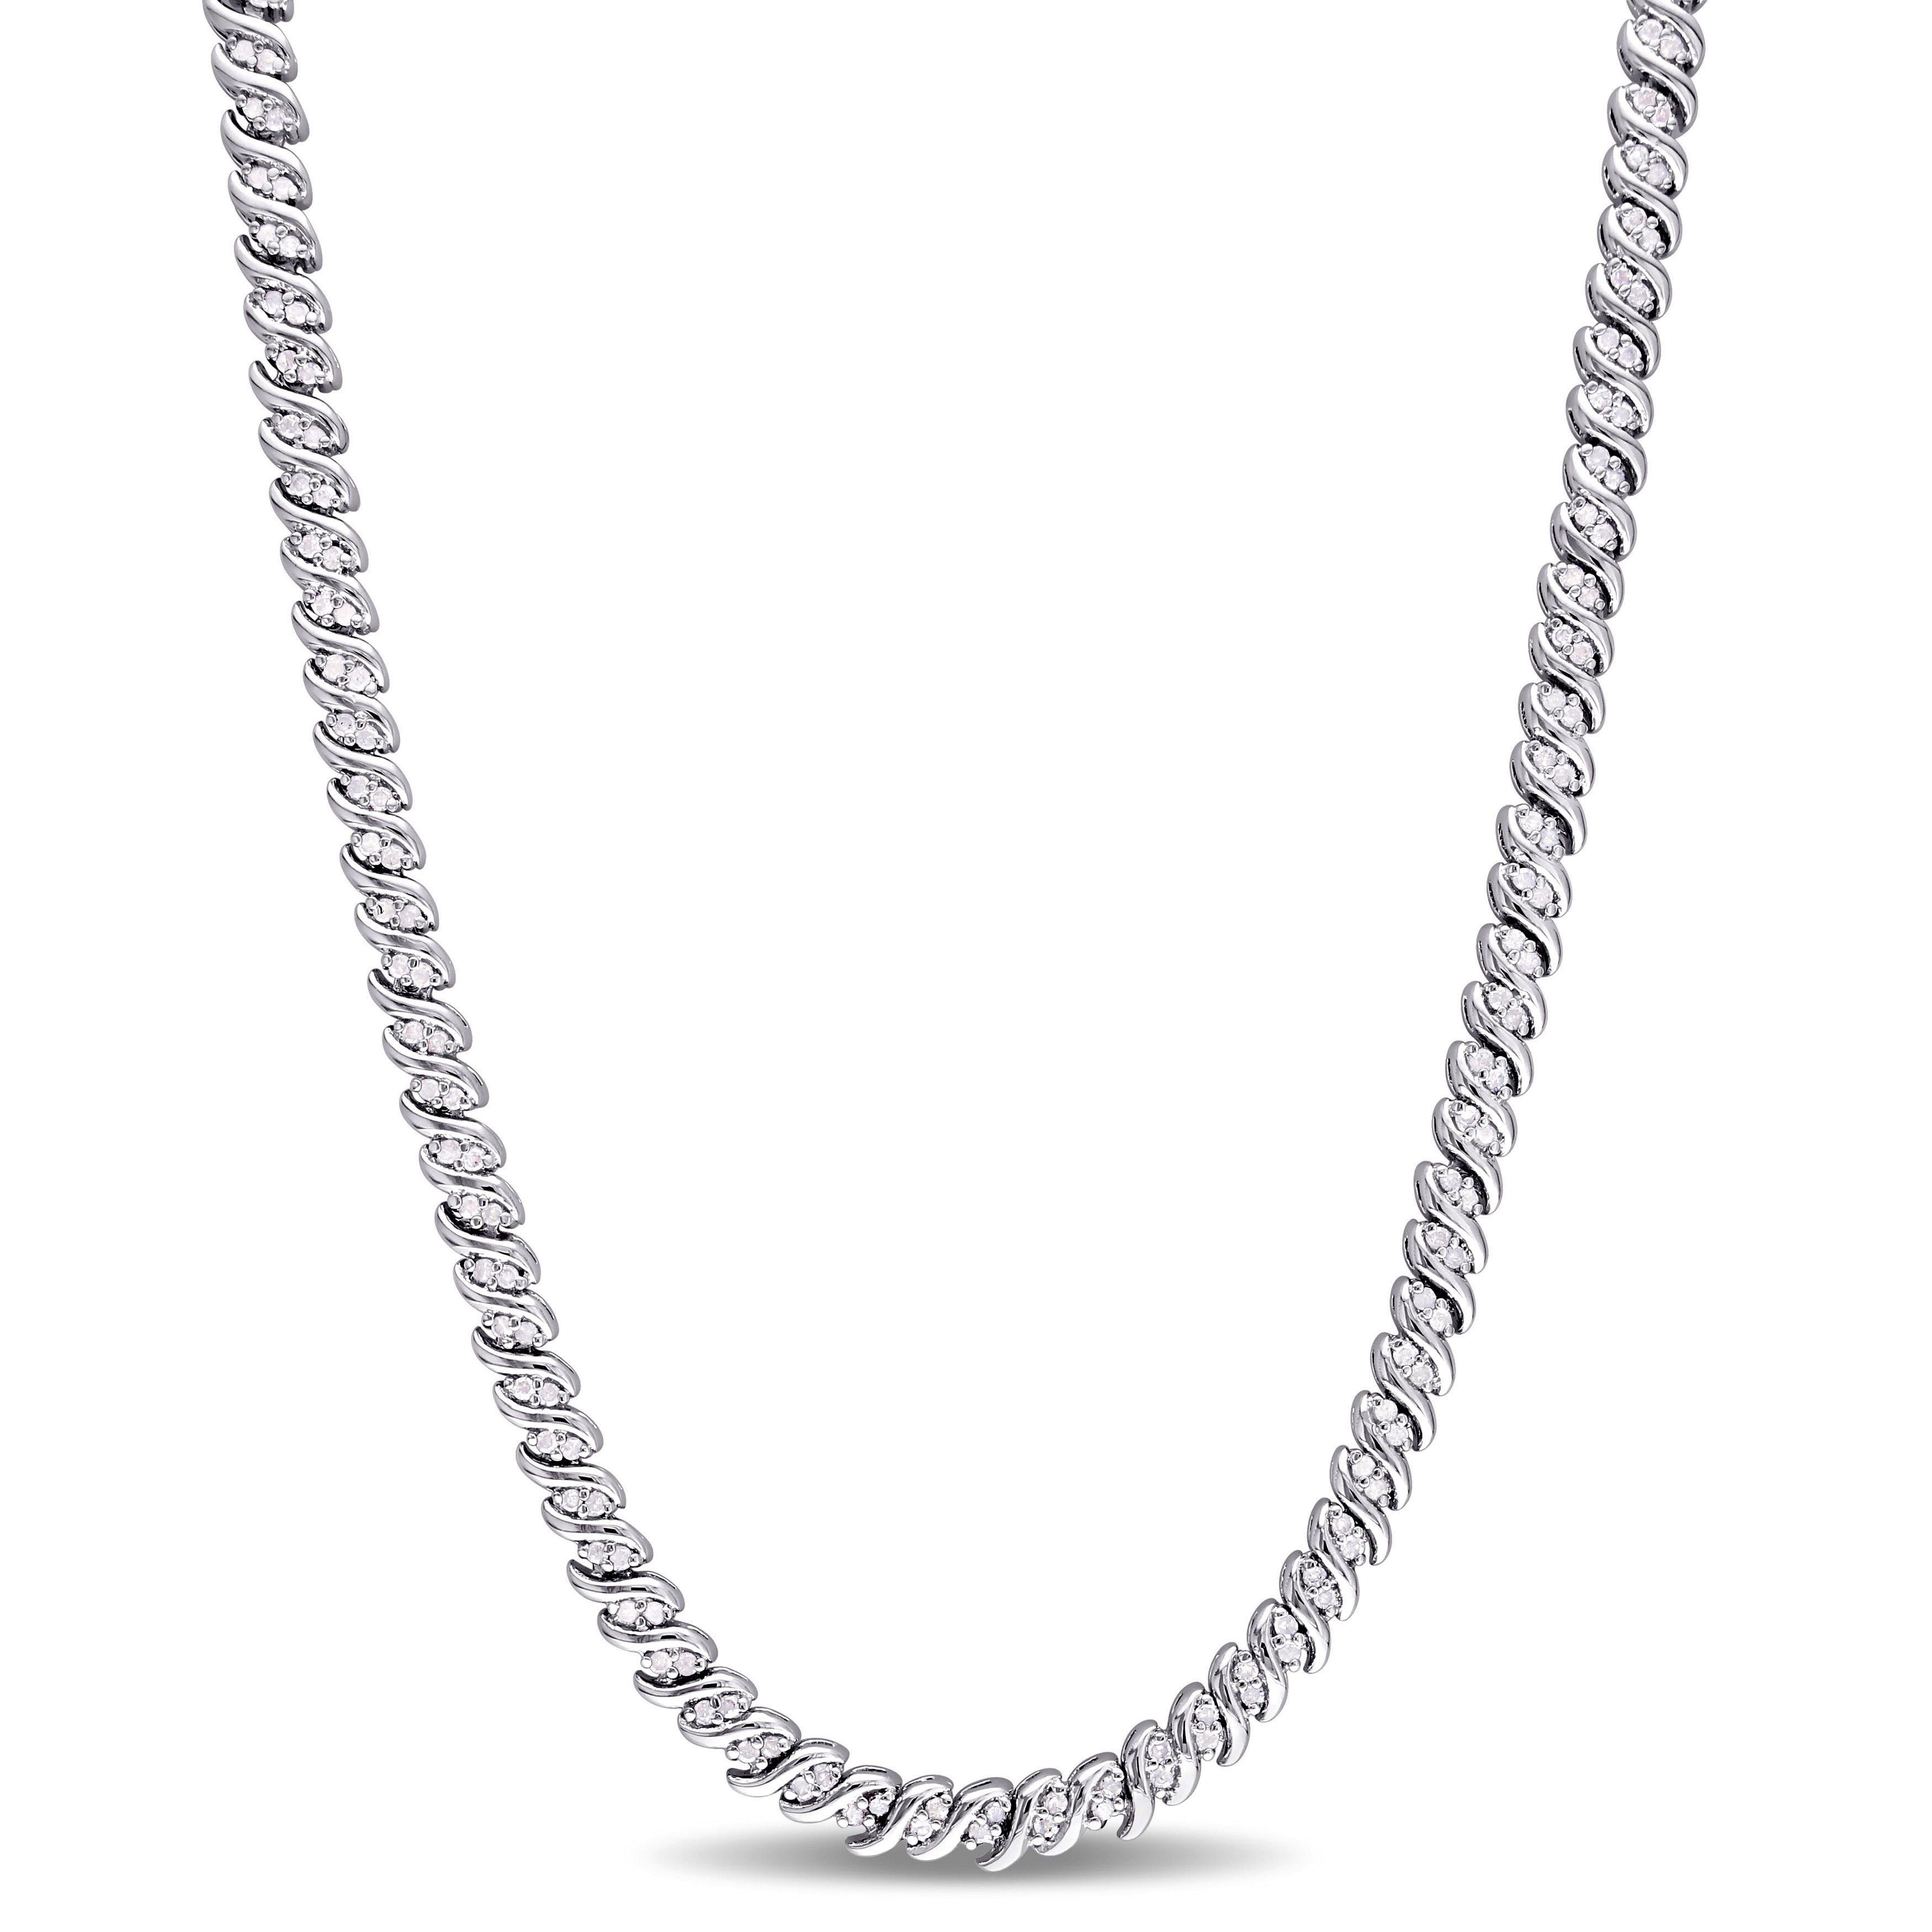 Diamond Braided Necklace 1ctw in Sterling Silver